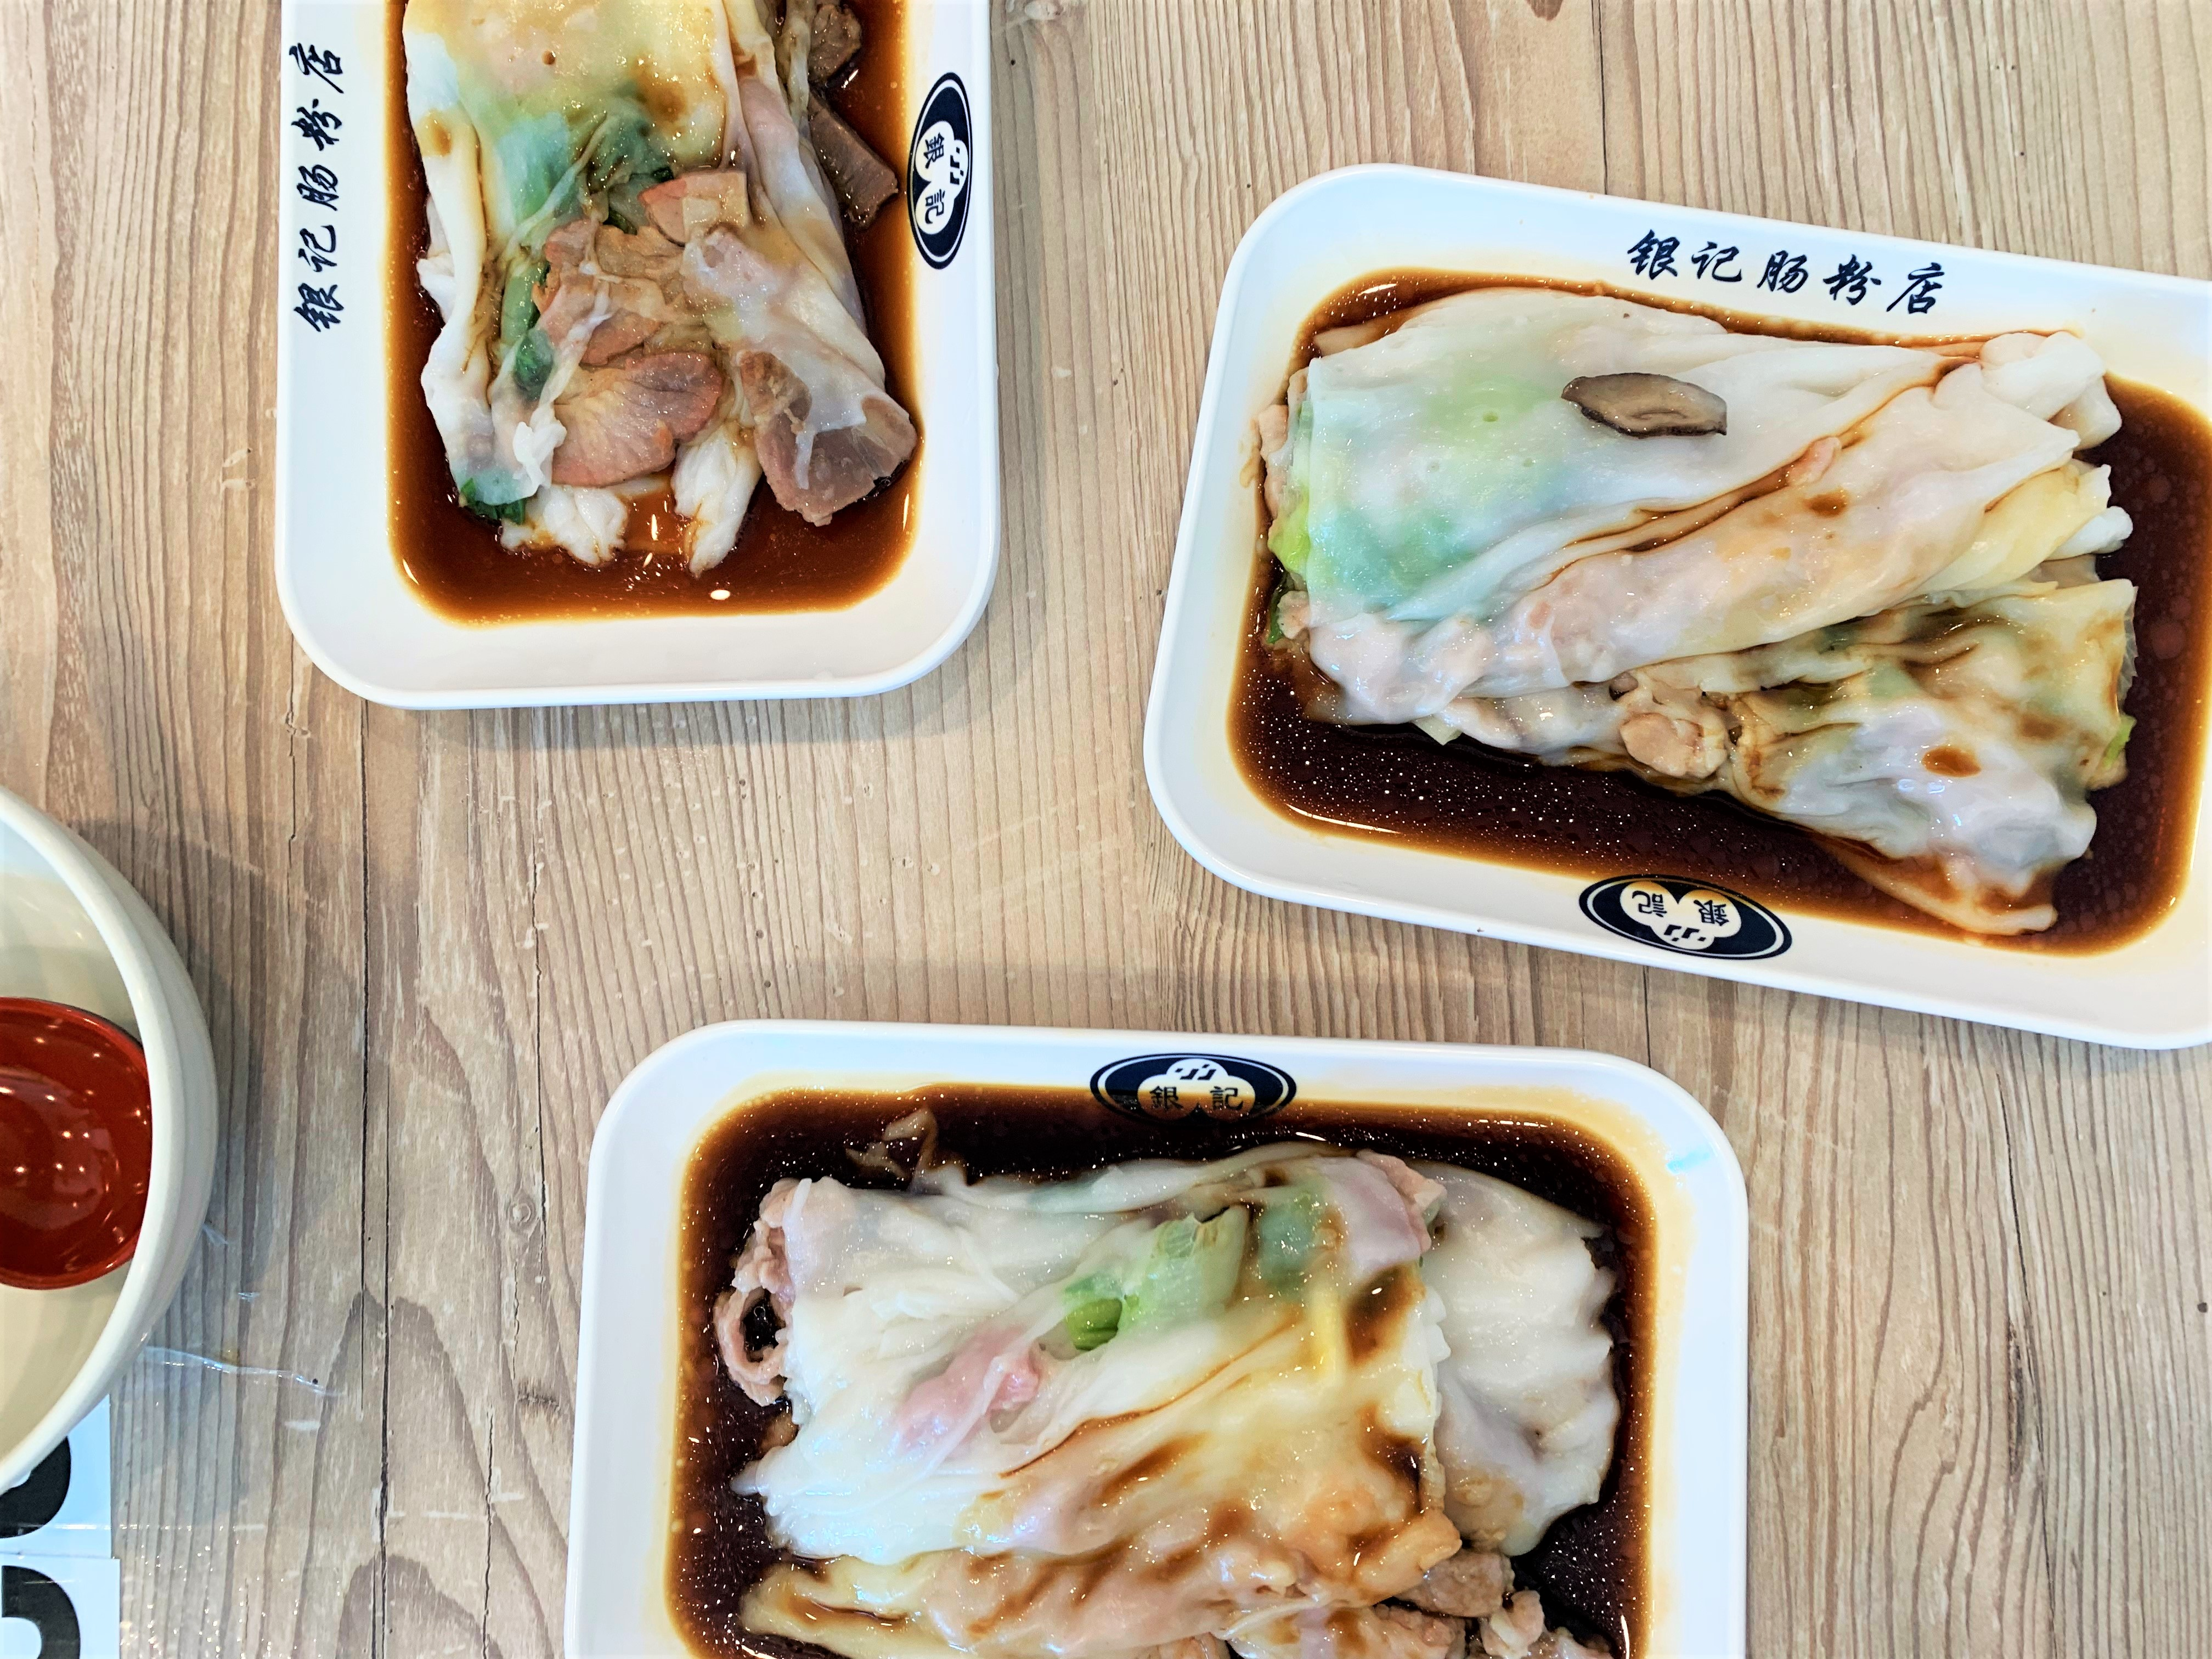 Guangzhou's Famous Rice Noodle Roll Restaurant Brings the Delicious Dim Sum Favorite to SGV